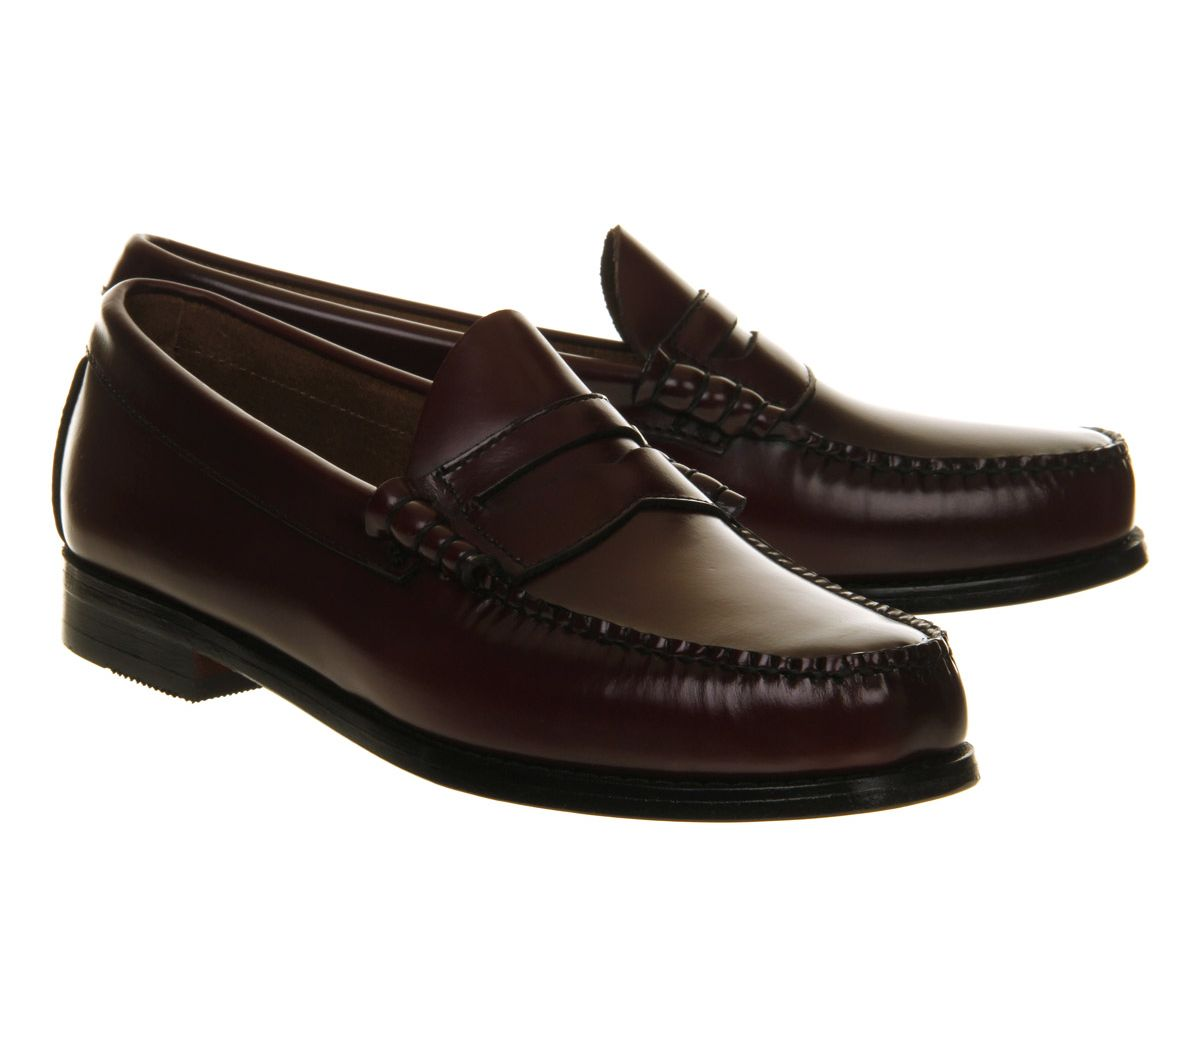 5422291e9f5 Mens G.H Bass   Co Larson Penny Loafers Maroon Leather Formal Shoes ...